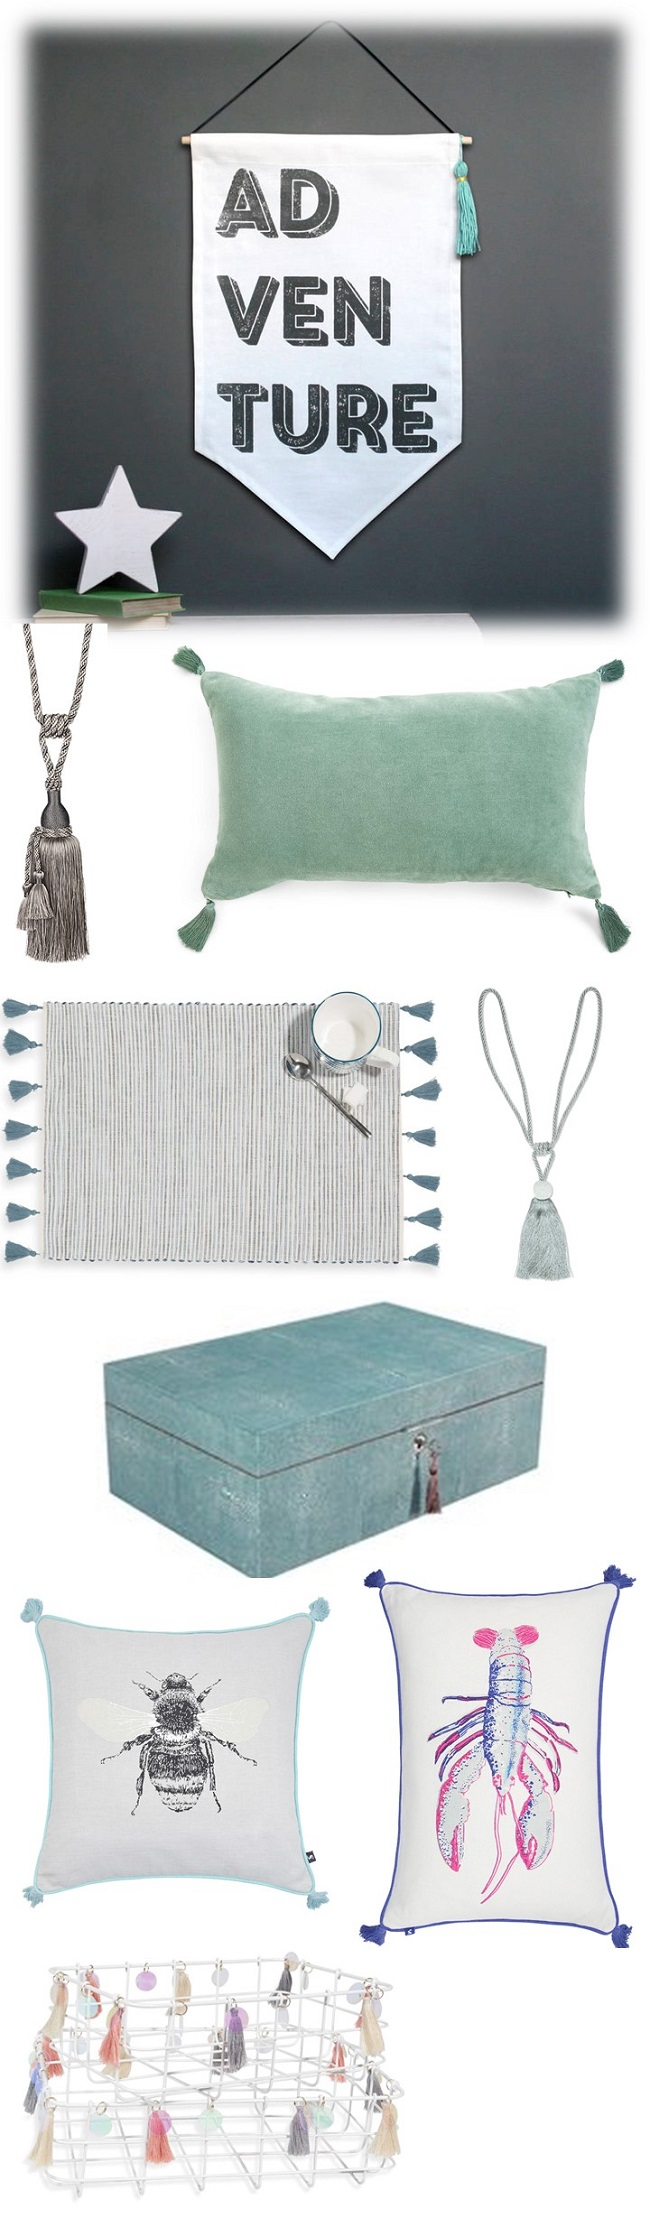 embellished tassel home accessory trend, moodboard